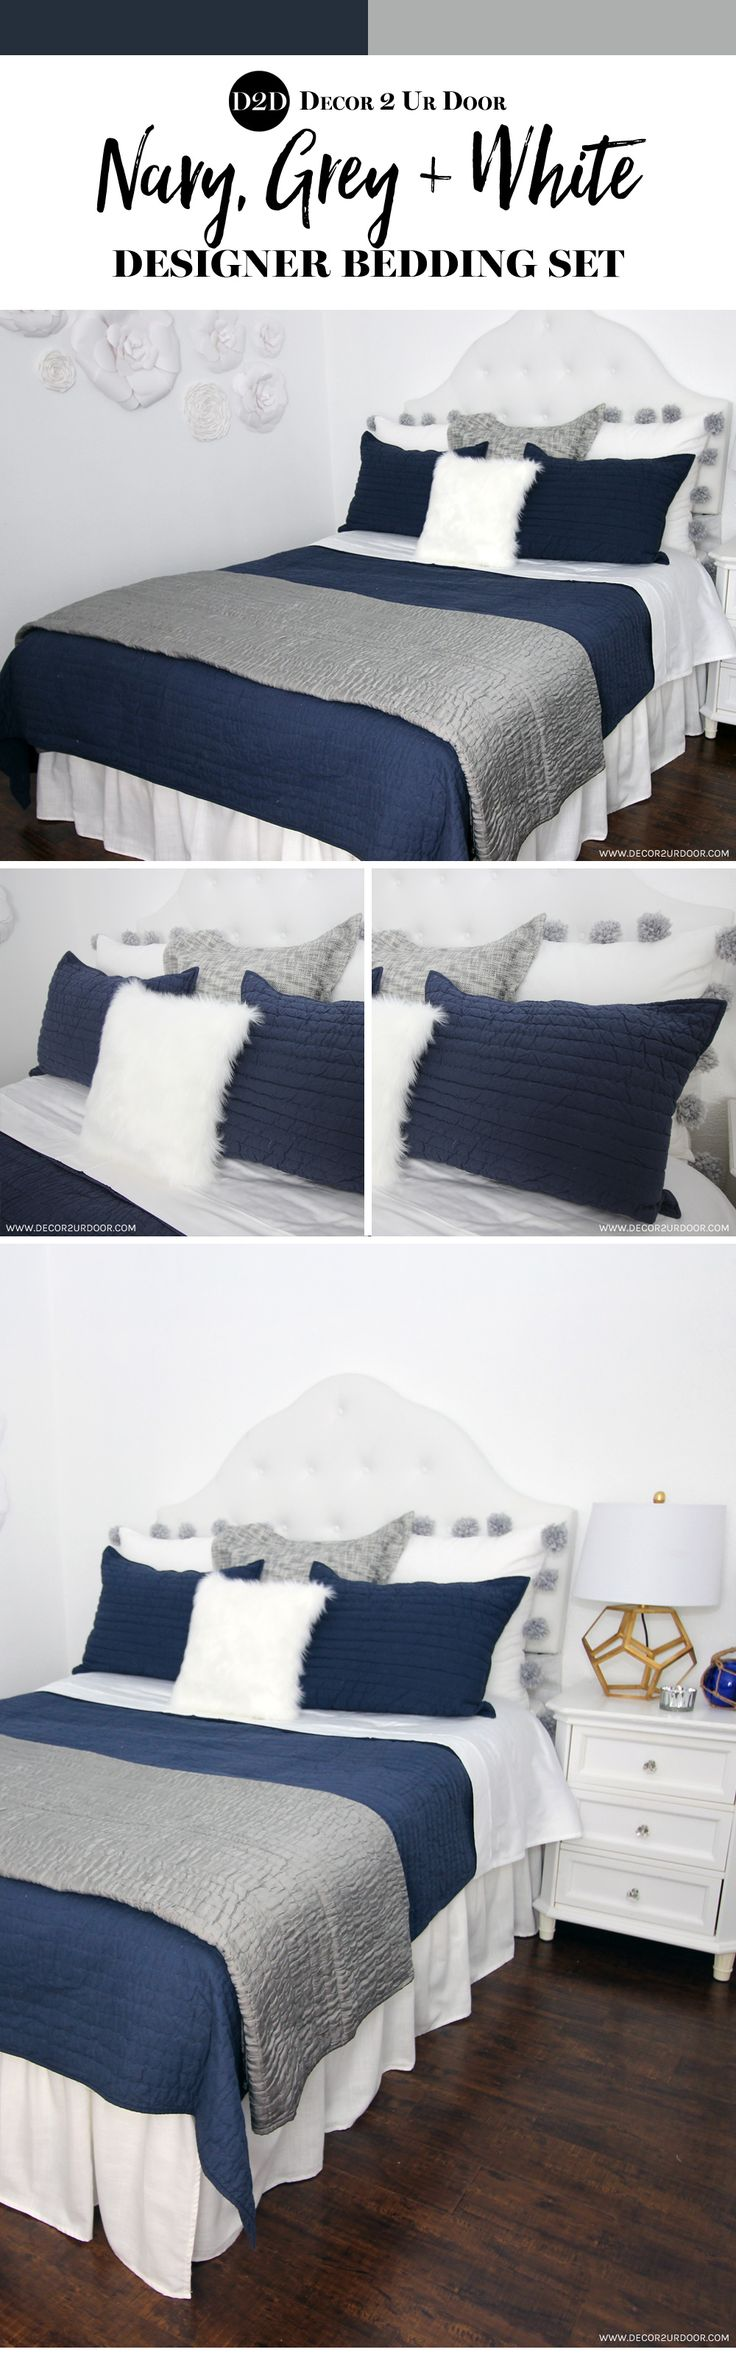 Masculine yet sweet. We adore this mixture of our grey sateen (super luxe) quilt paired with white and navy accents. We swoon over our exclusive handmade white with jumbo grey pompom euro pillow. Fur, pompoms, linen and texture... it really can't get any better! Navy, grey and white is one of this year's hottest master bedroom bedding trends.